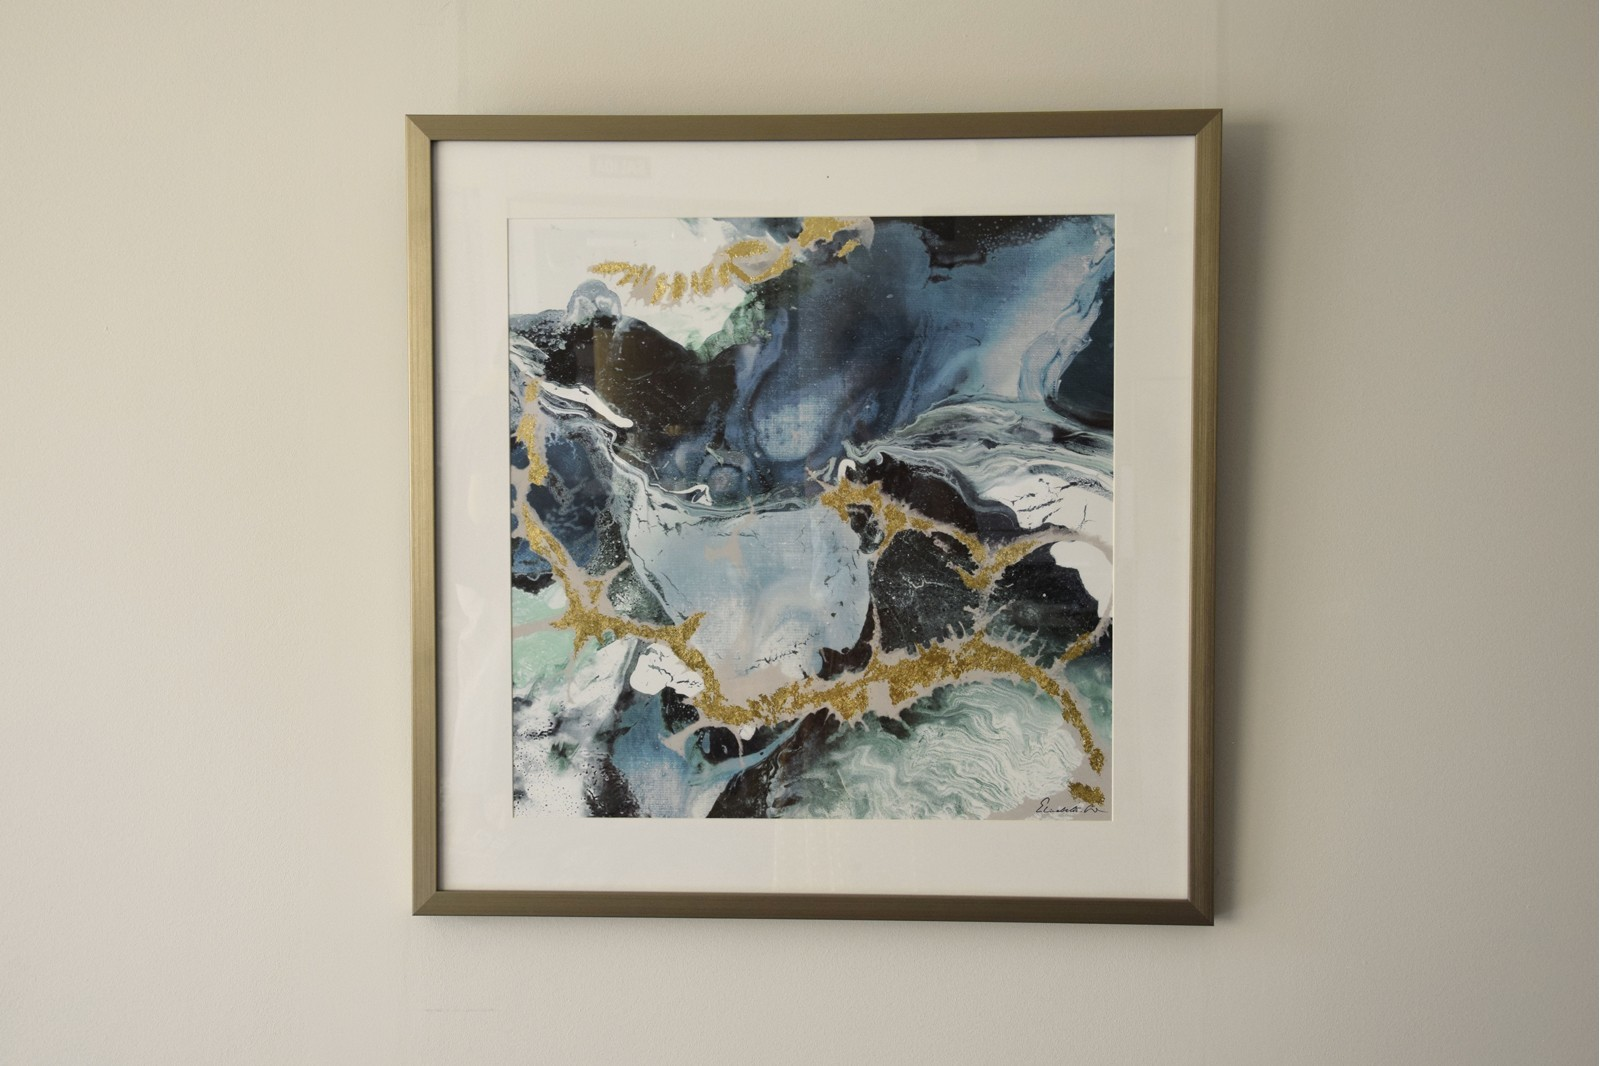 ABSTRACT PAINTING WATER N2. GLASS